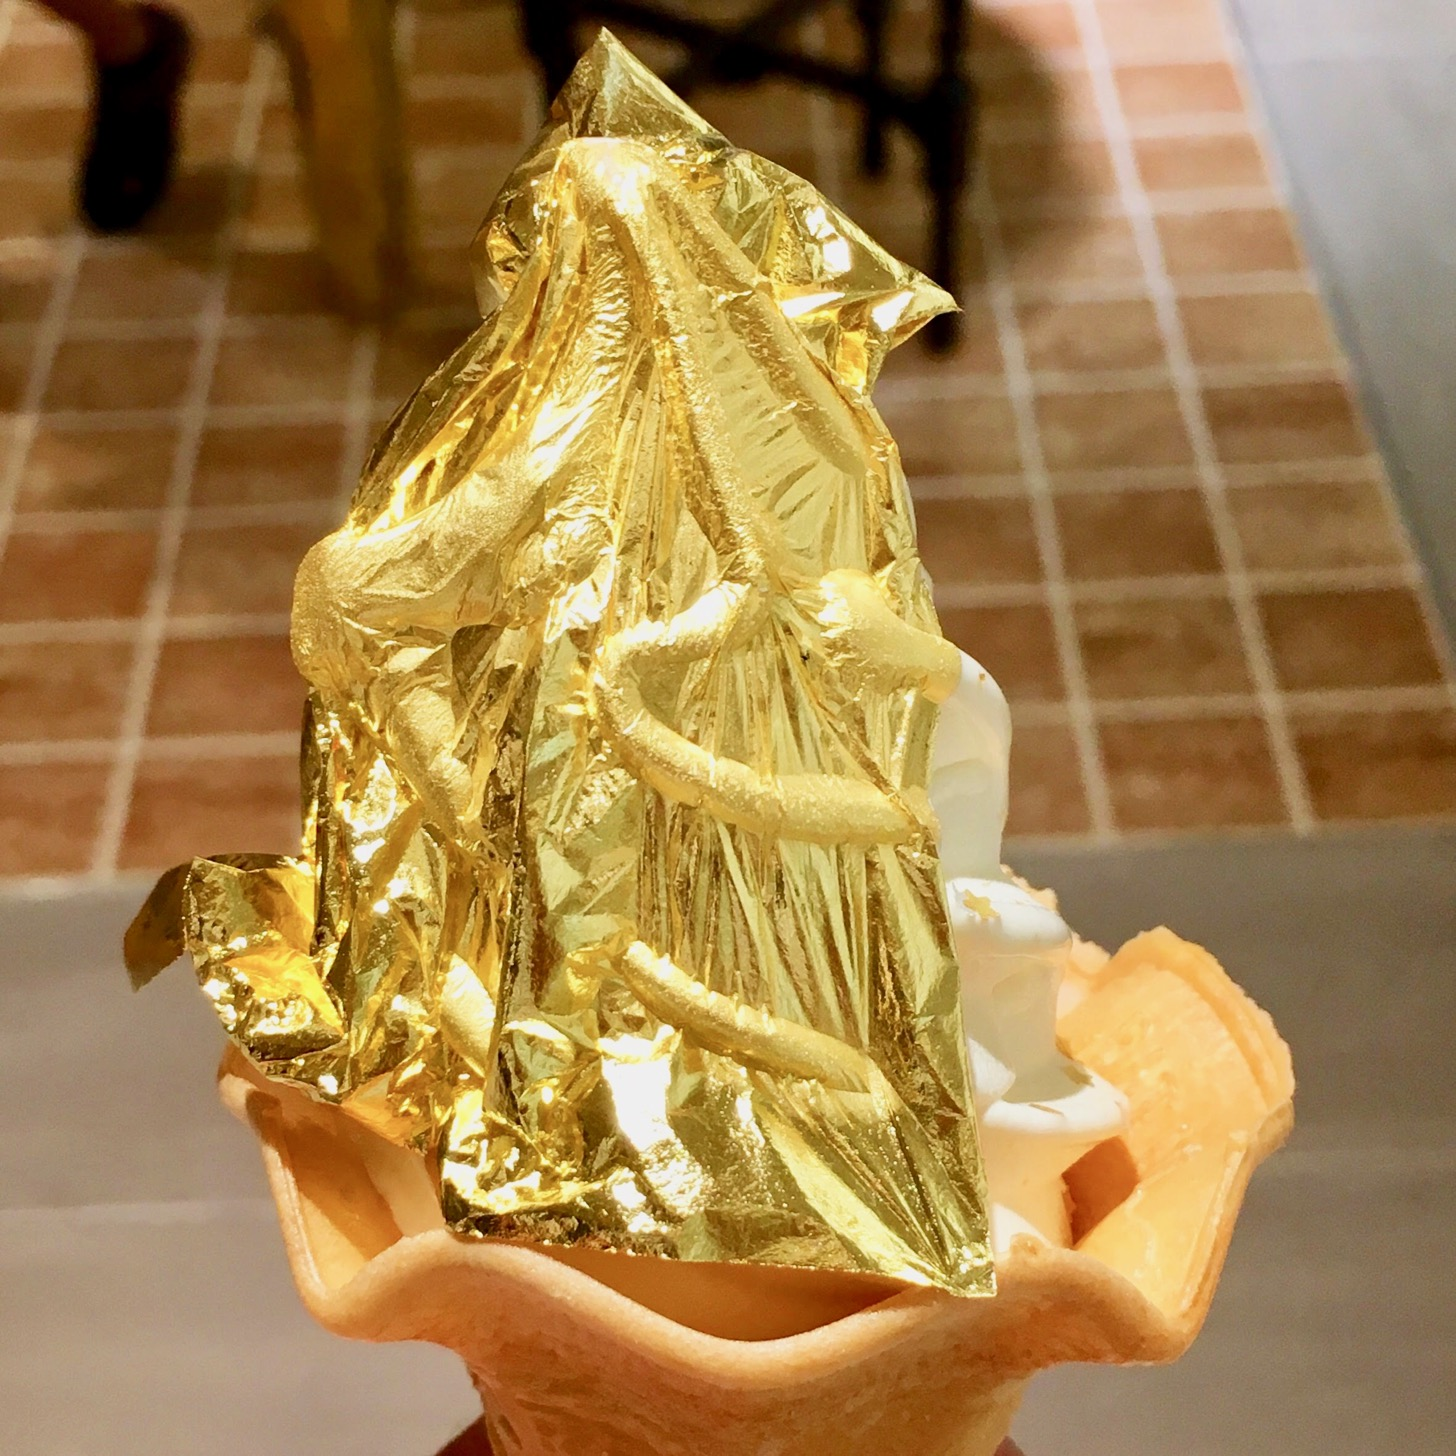 [Gold Foil Soft Cream entered Tokyo for the first time] I ate it for a limited time at Ginza Six